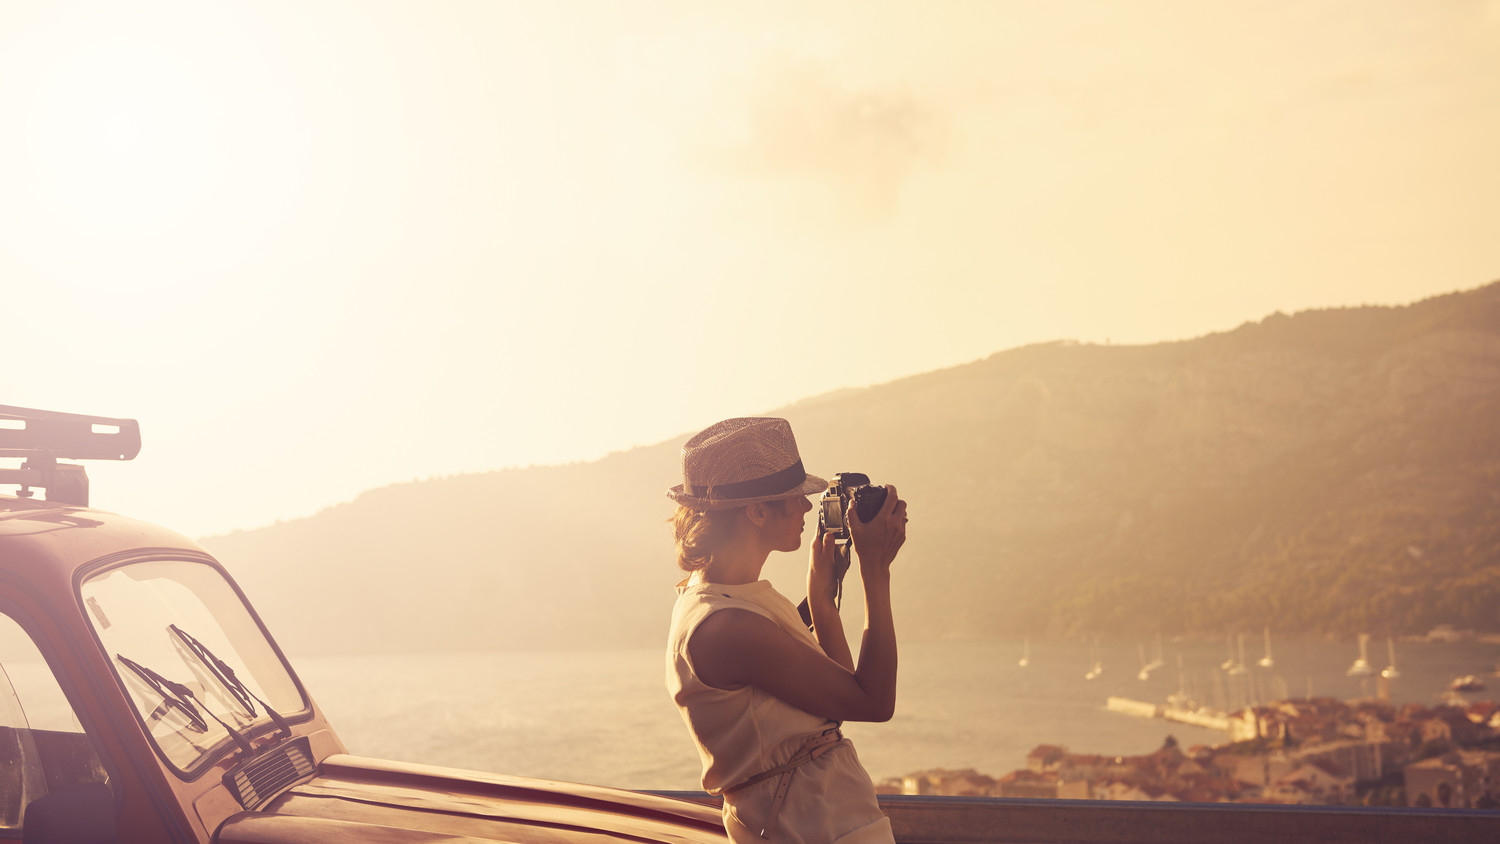 woman sightseeing camera